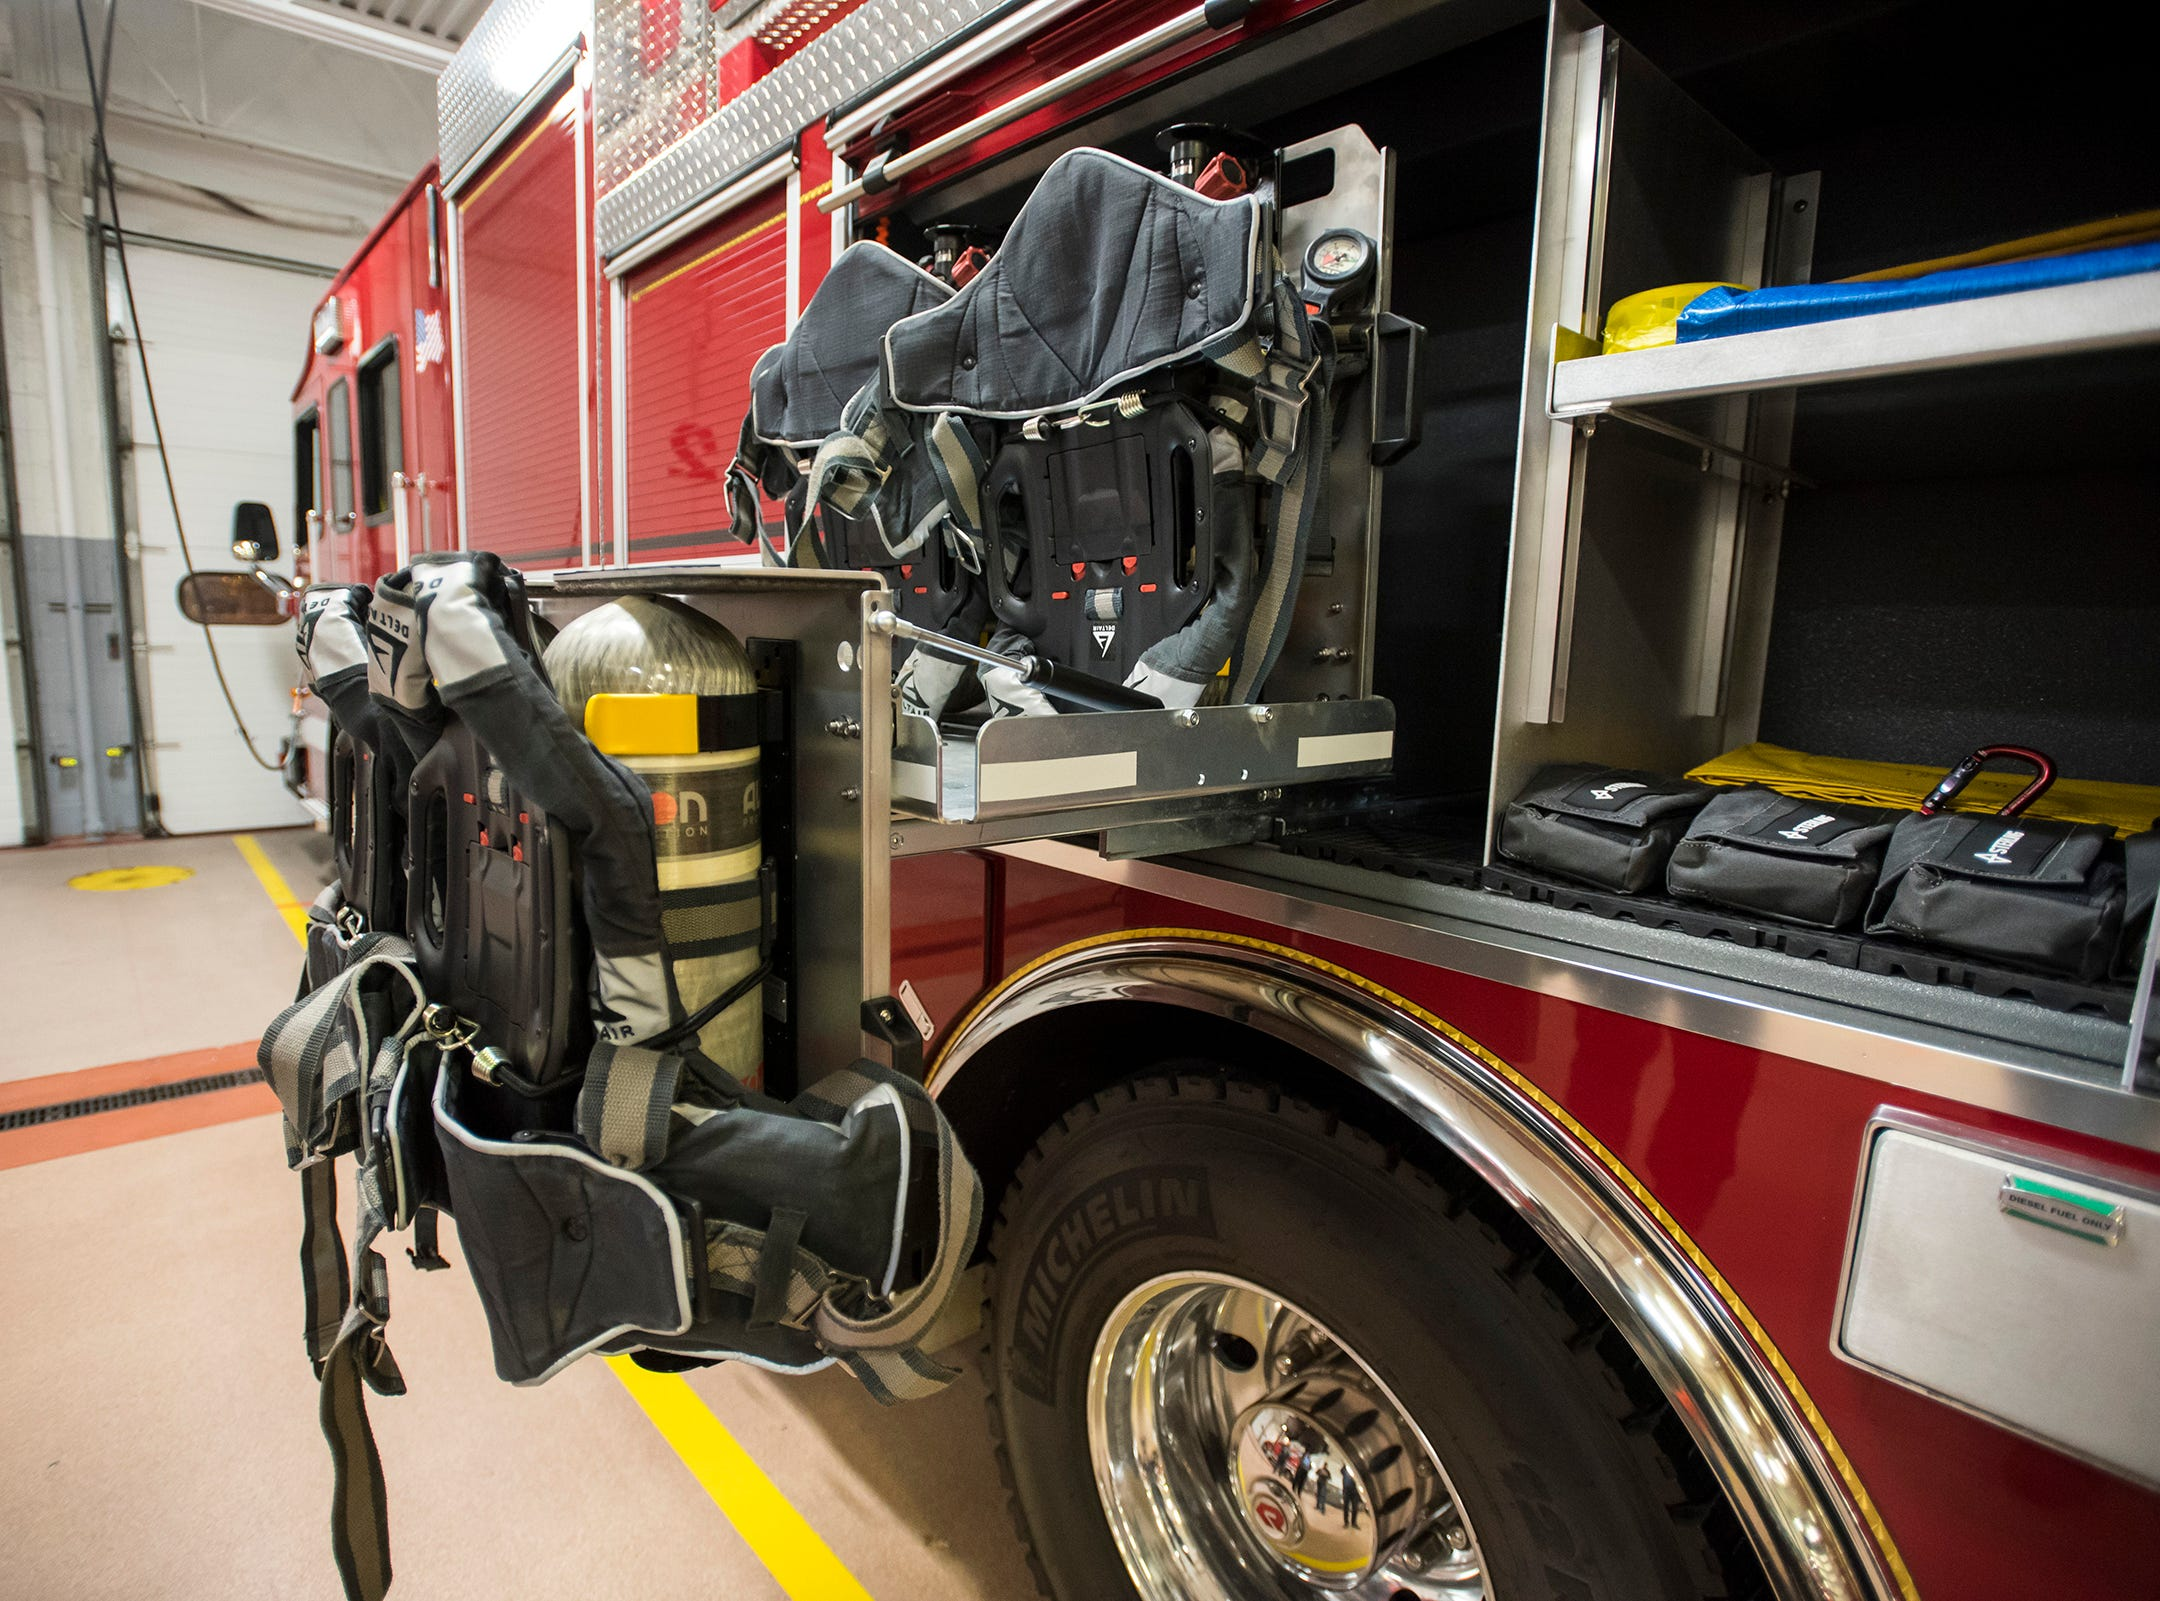 Air tanks can be slid out on a rack and pulled directly onto a standing firefighter's back. Previously tanks were mounted to the wall of the truck and firefighters would have to lift and carry them down, which lead to twisting injuries to firefighters' backs.